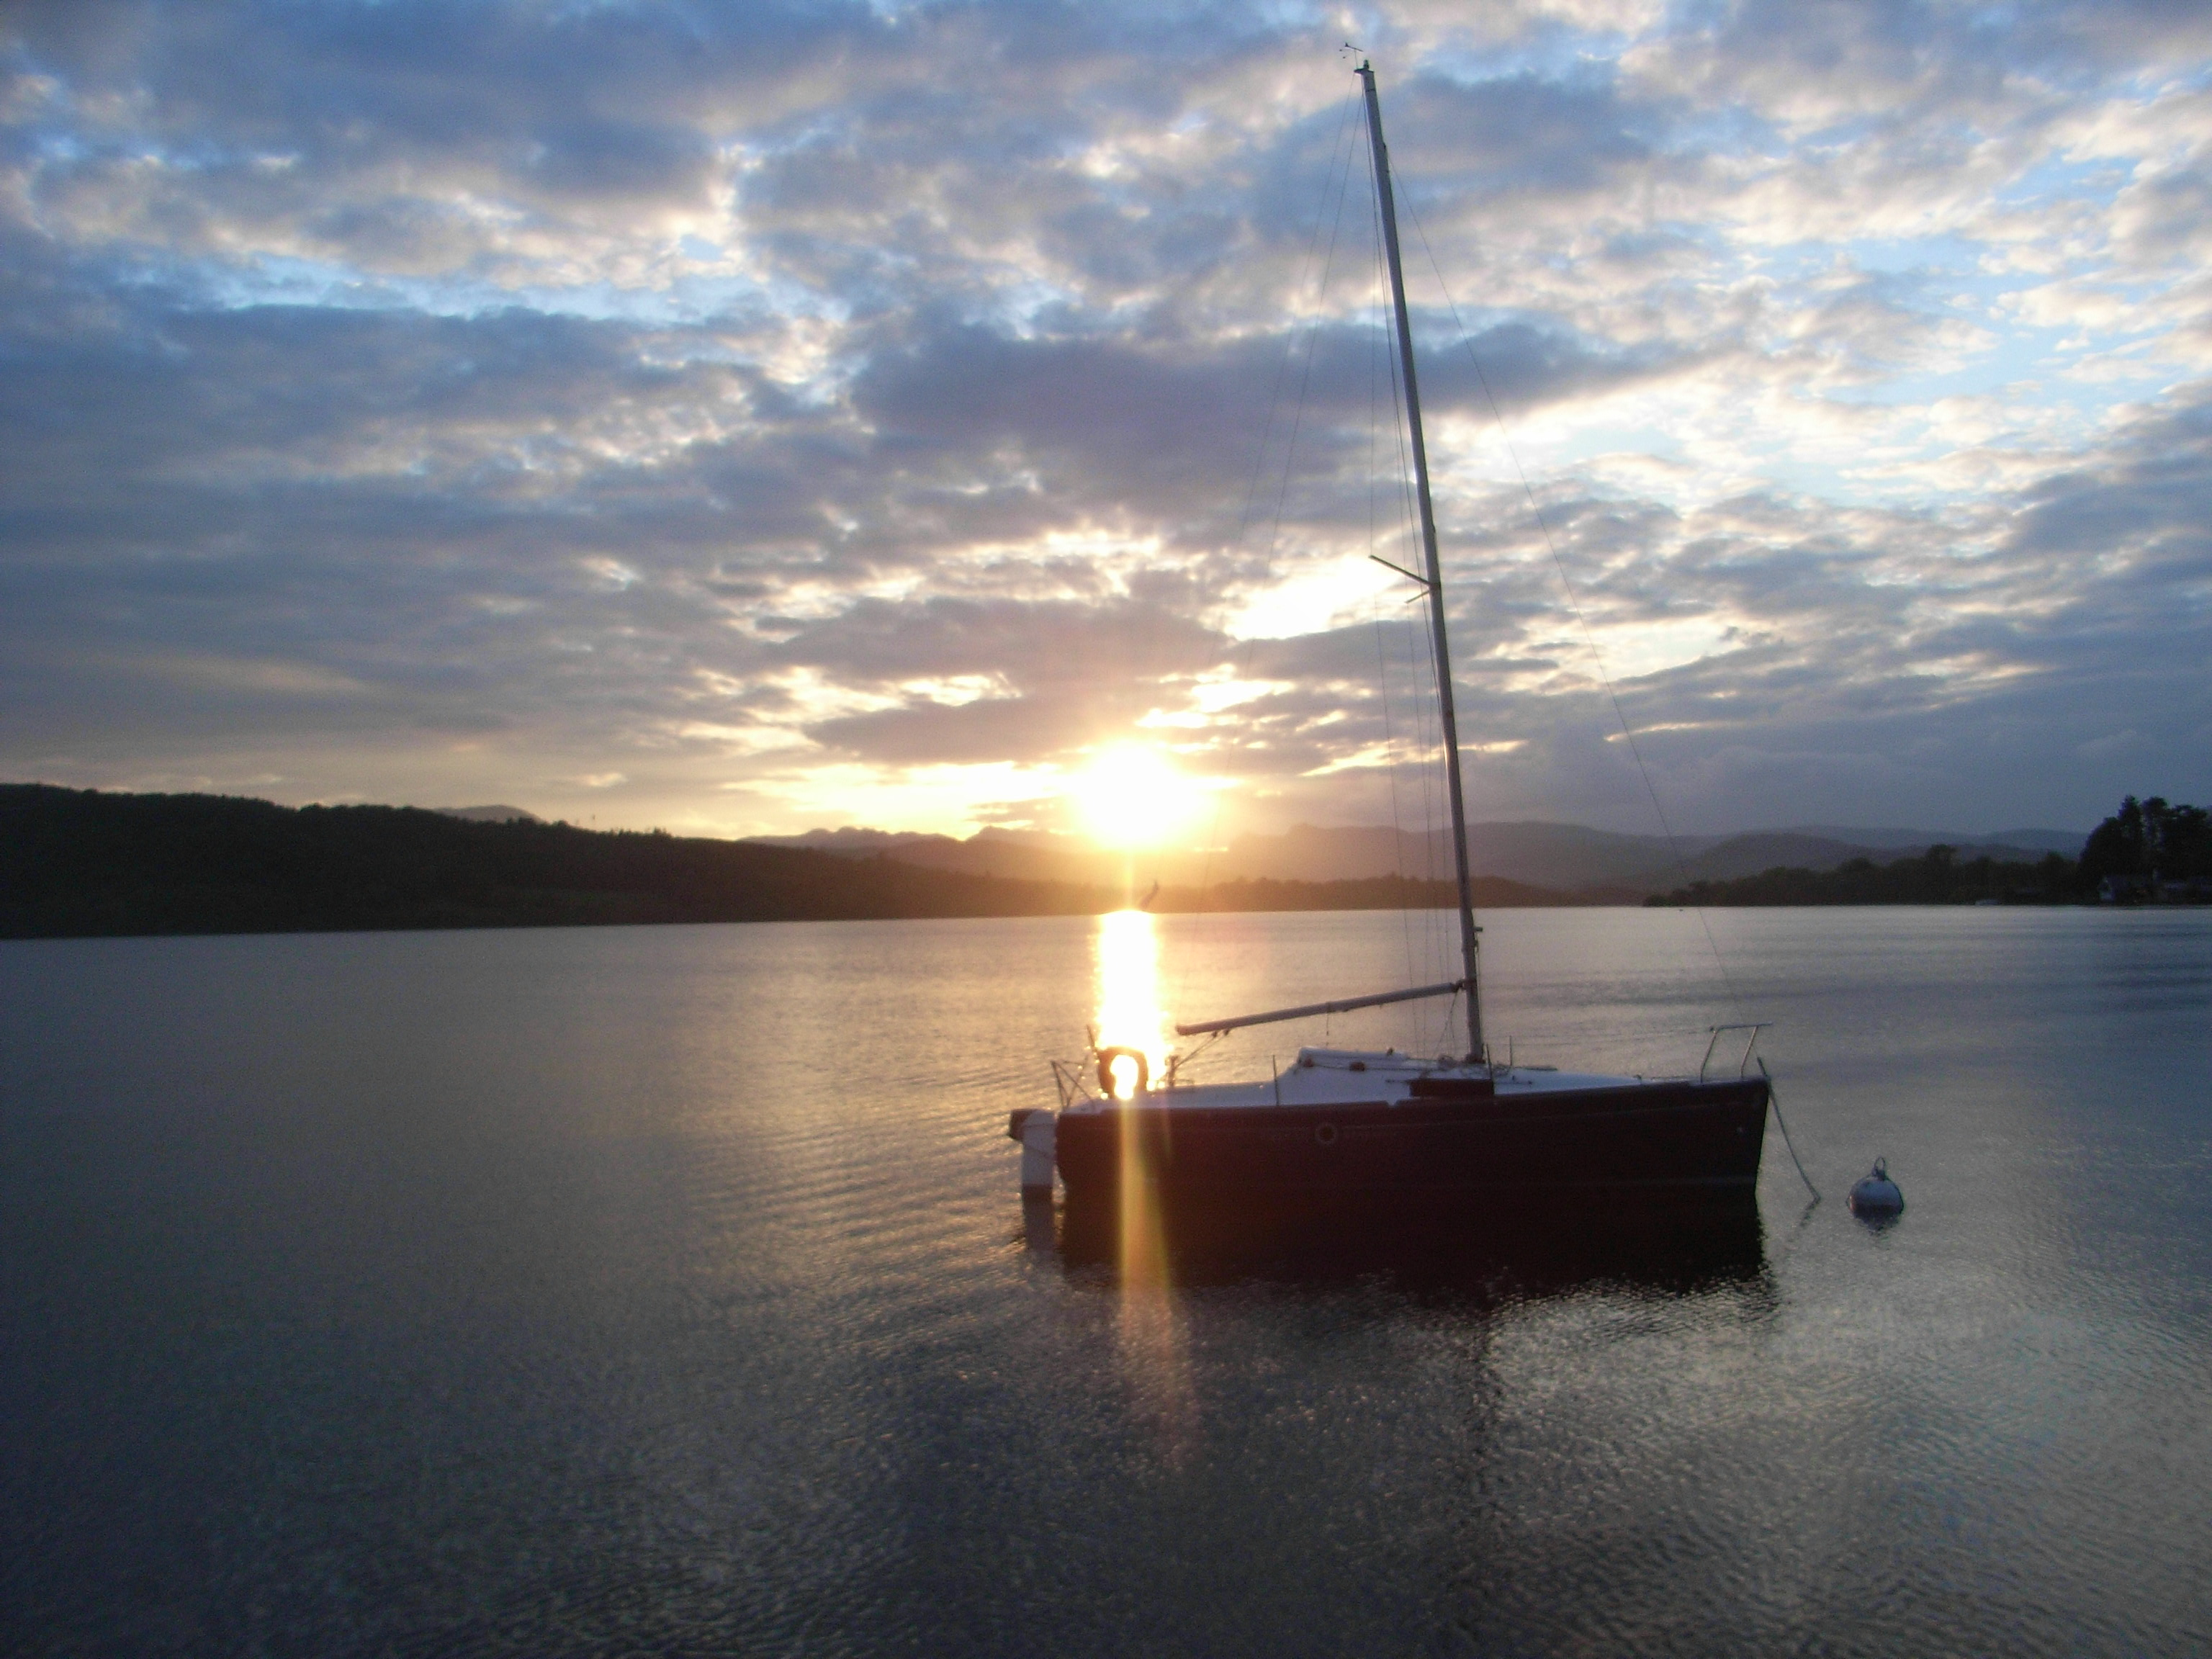 A yacht in the calm waters of Lake Windermere